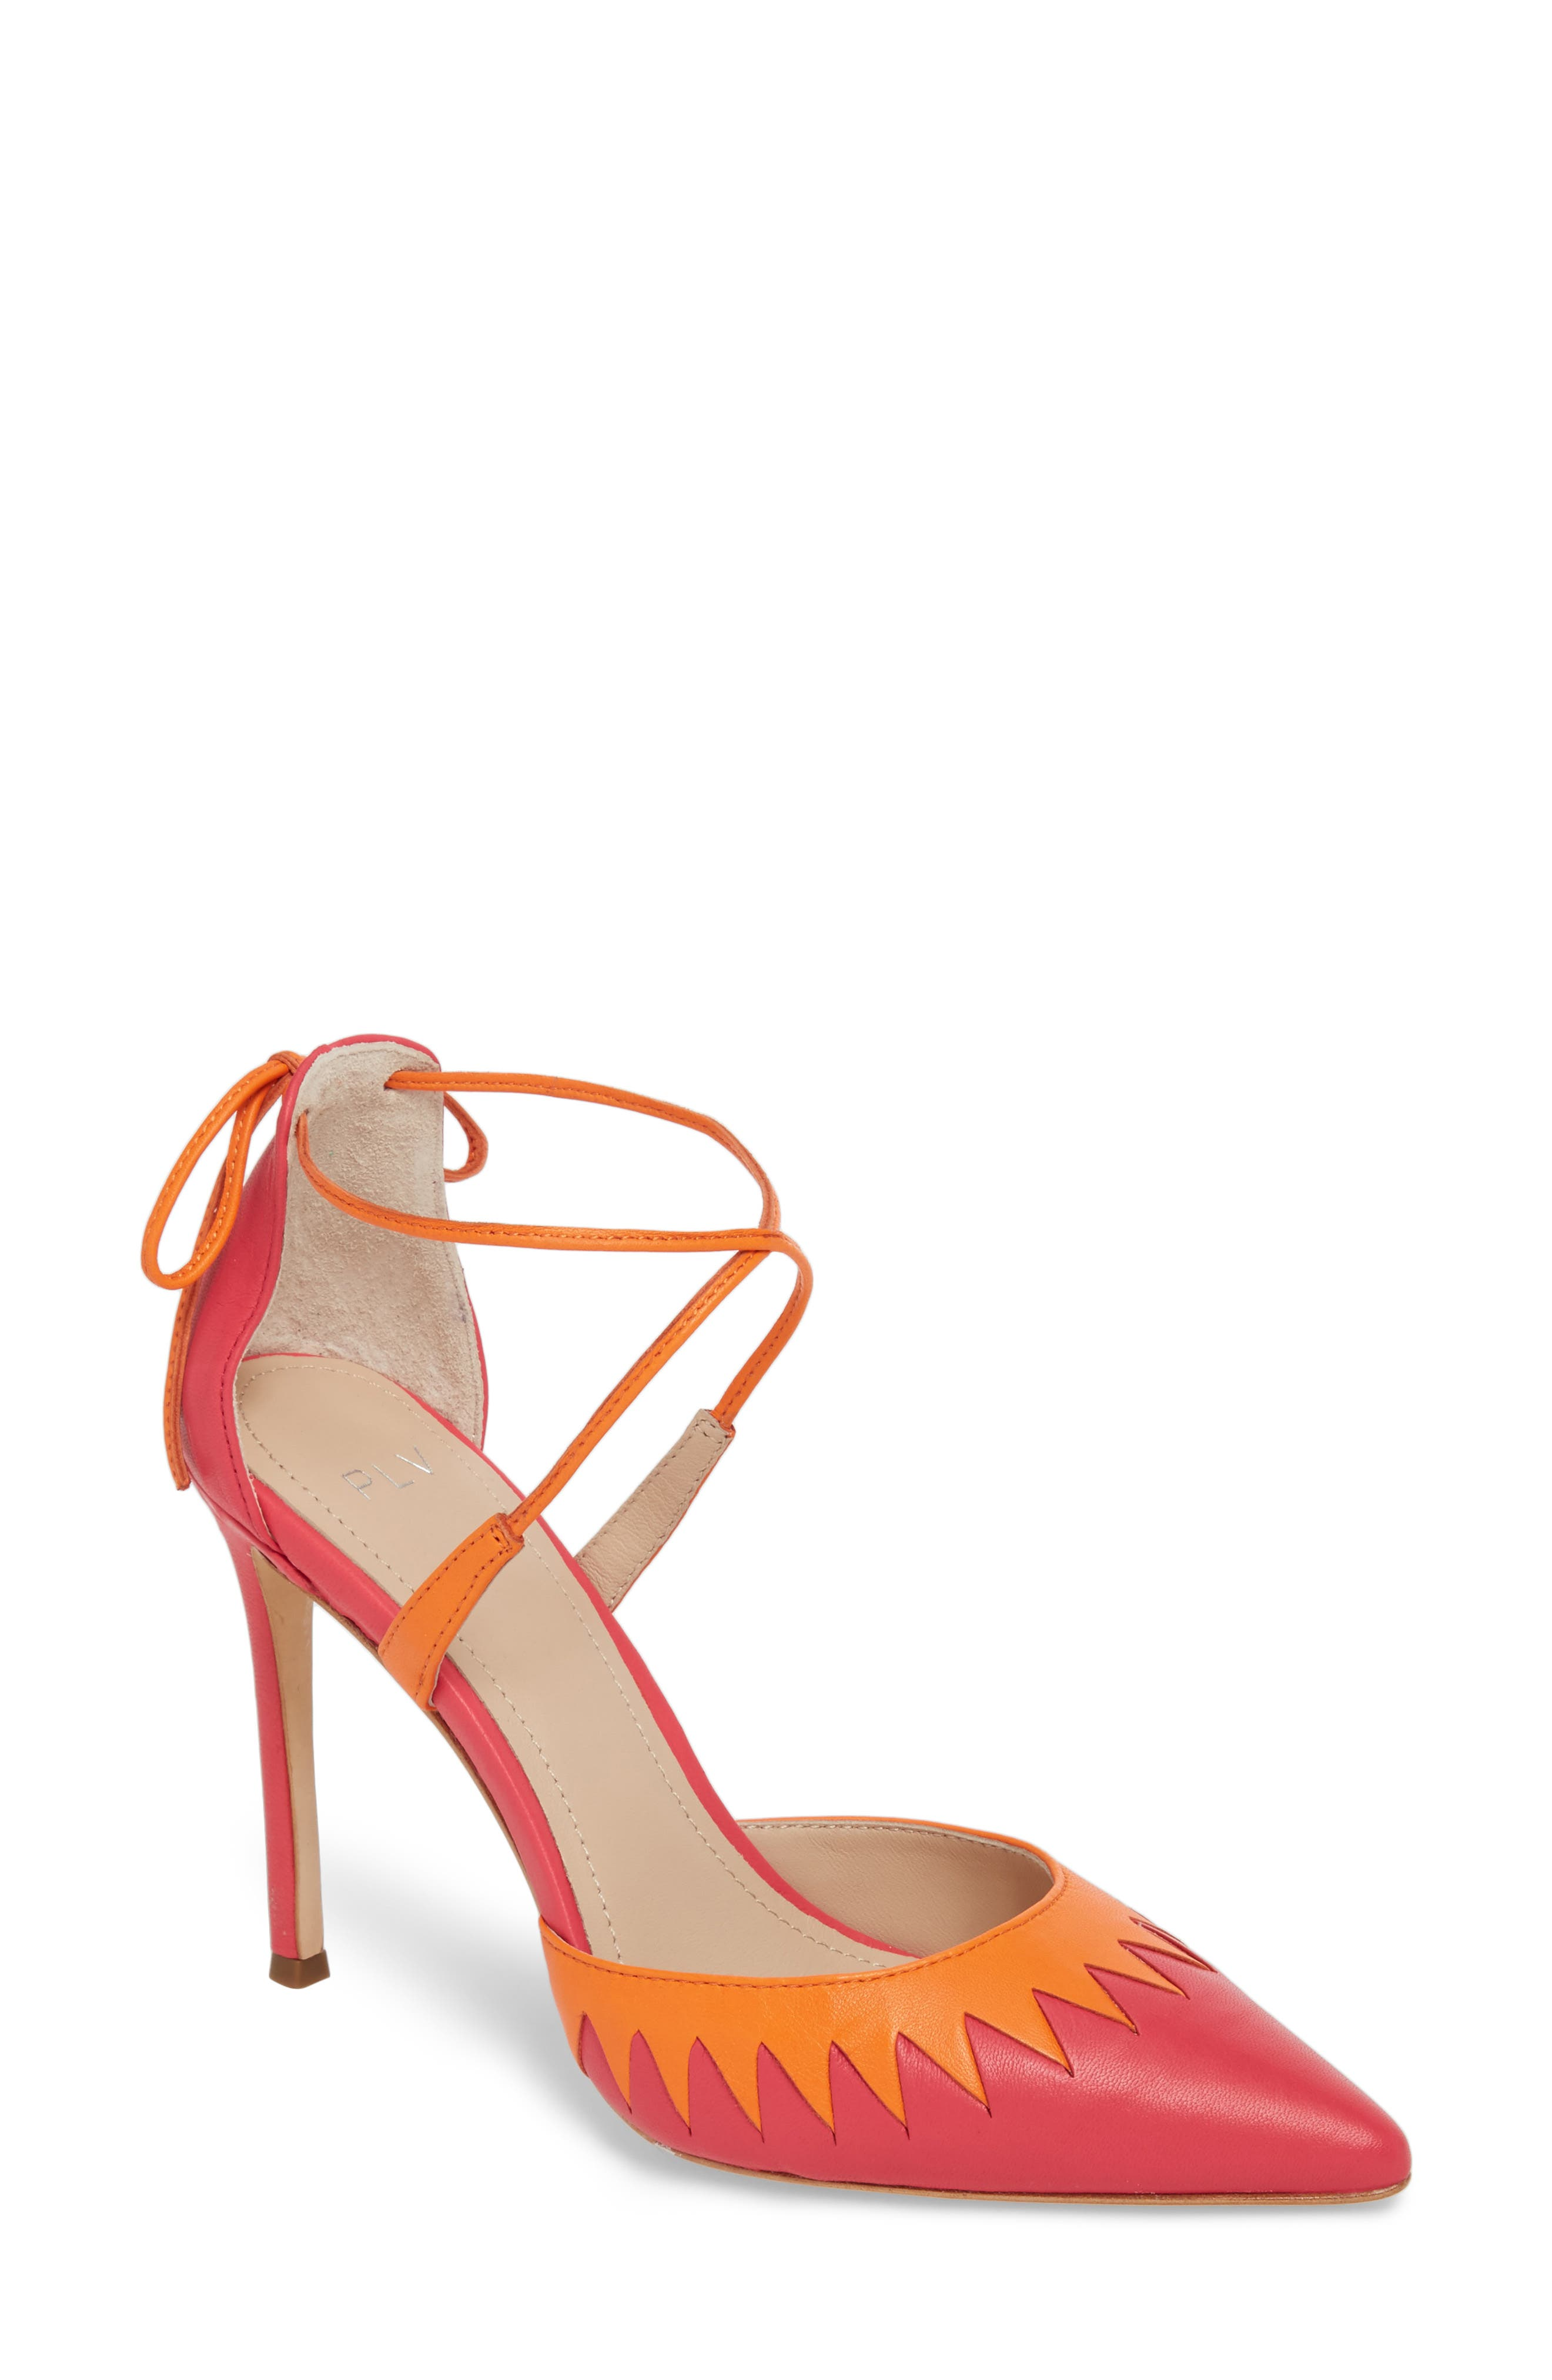 Cenya Pump,                         Main,                         color, Azalea/ Orange Blossom Leather